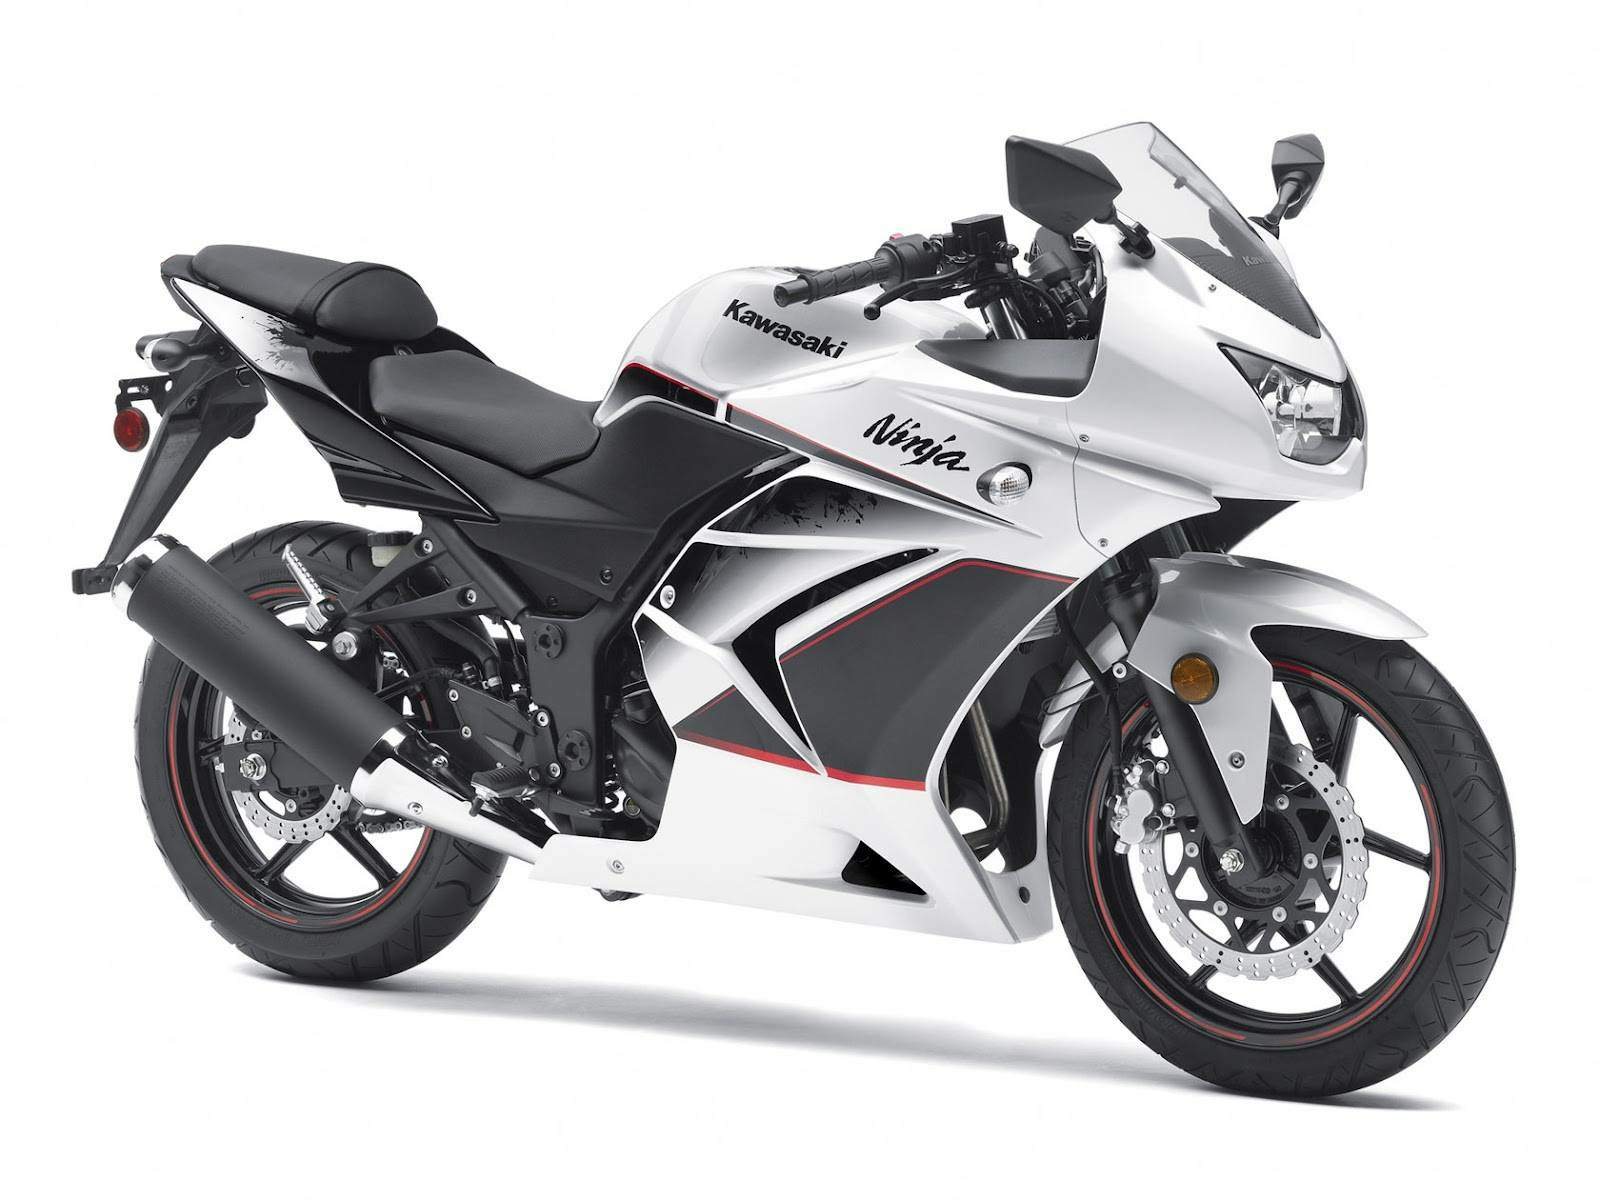 Kawasaki Superbike Malaysia  Facts You Need To Know About